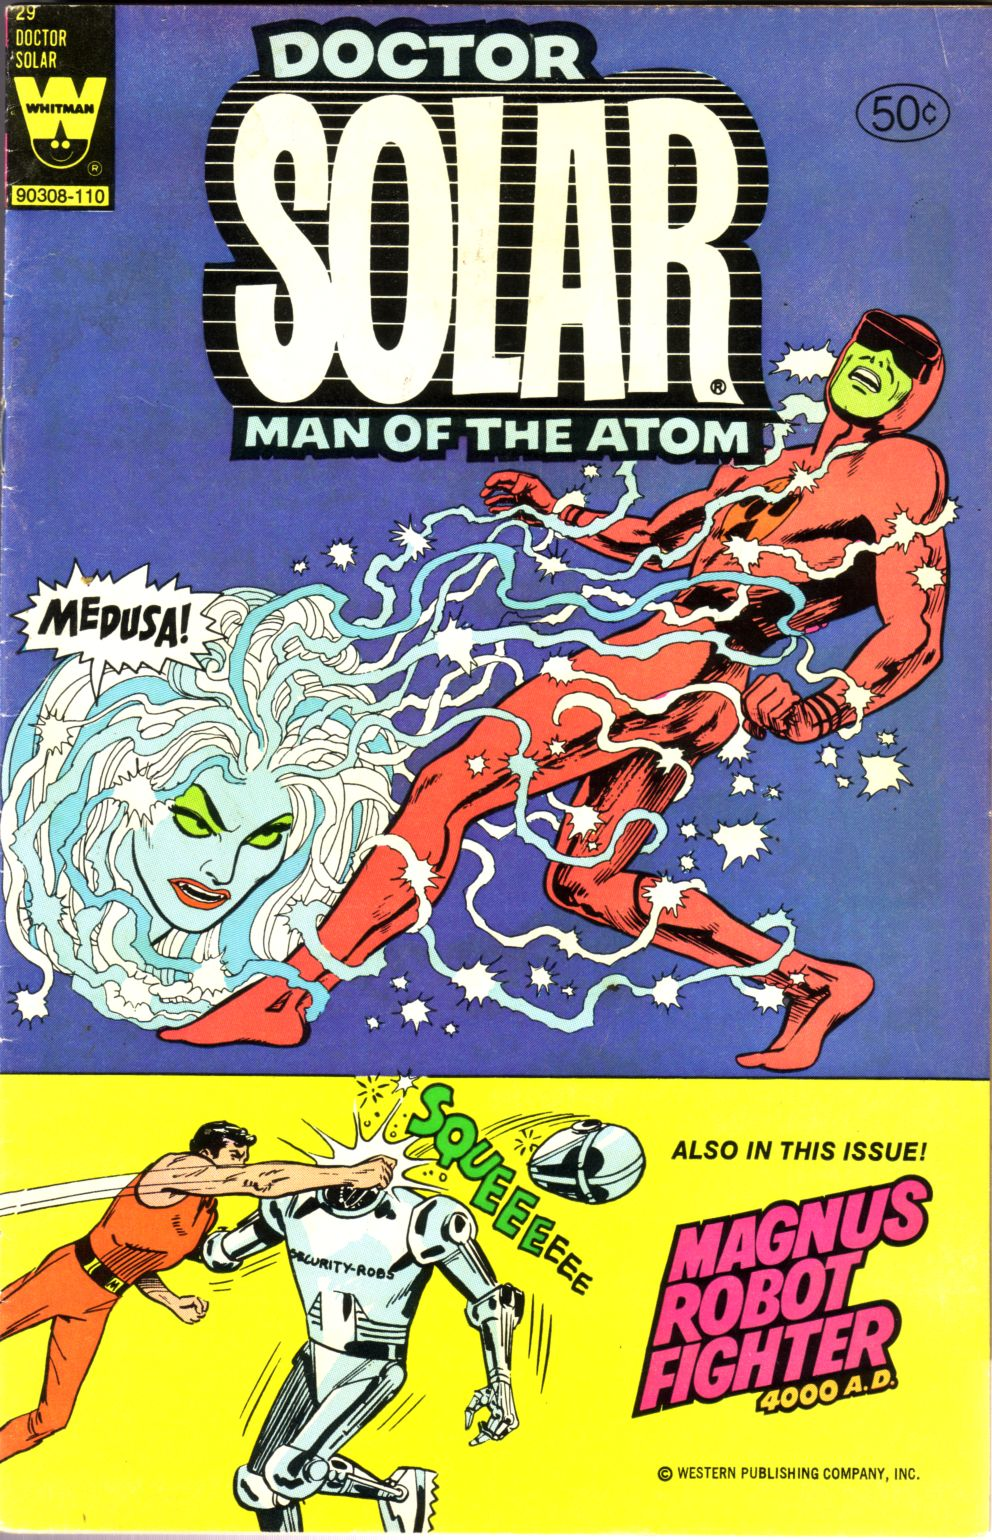 Doctor Solar, Man of the Atom (1962) 29 Page 1